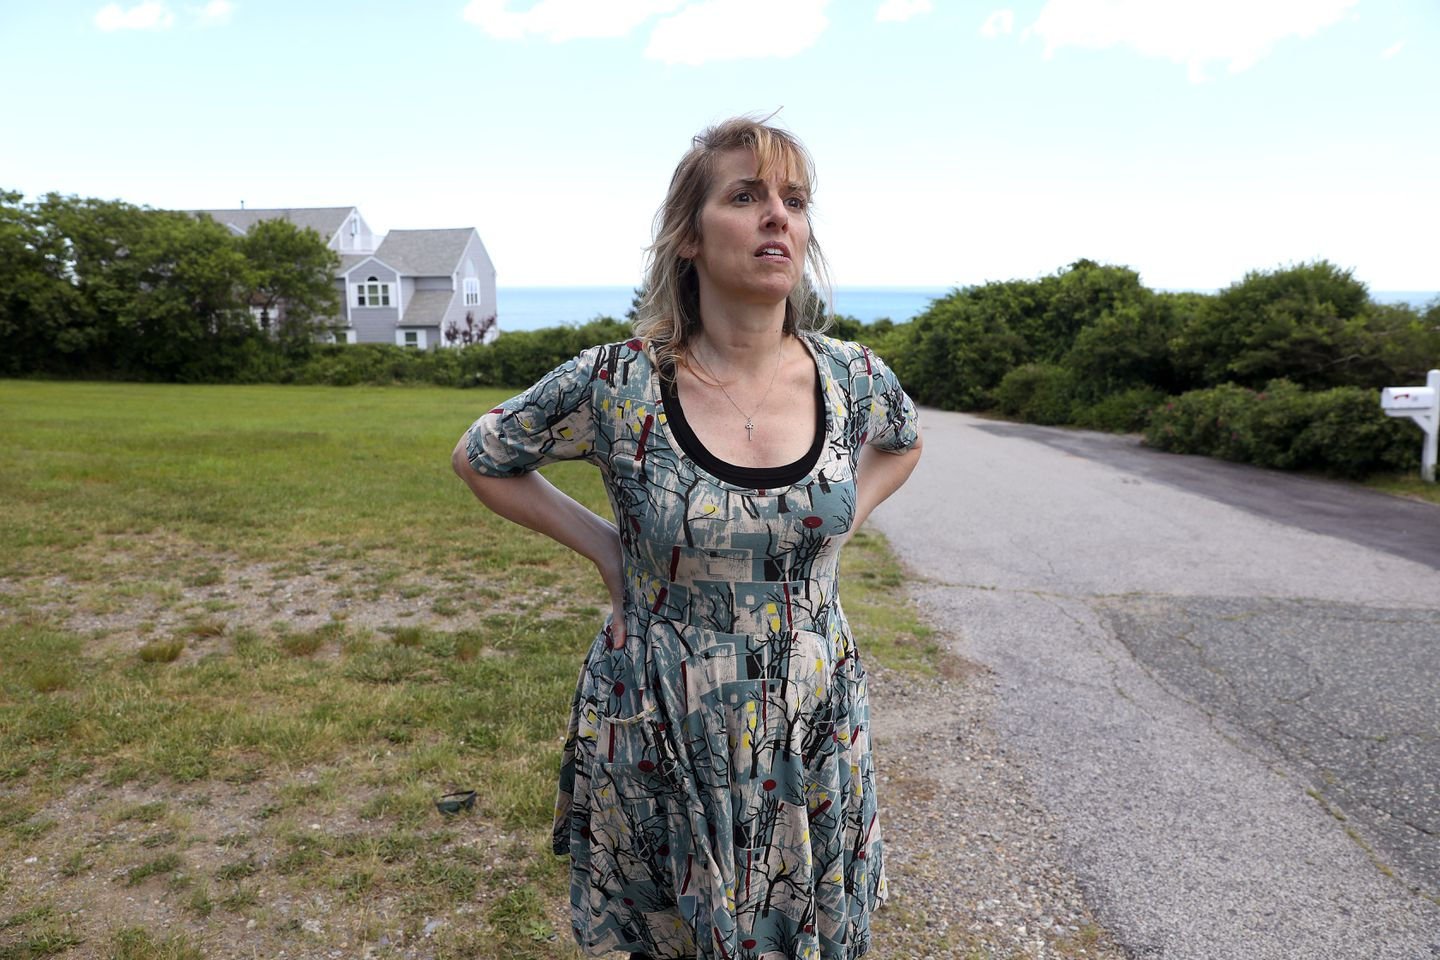 Kathy Lavrentios describes how she says she was attacked by two dogs on Ames Avenue in 2015.